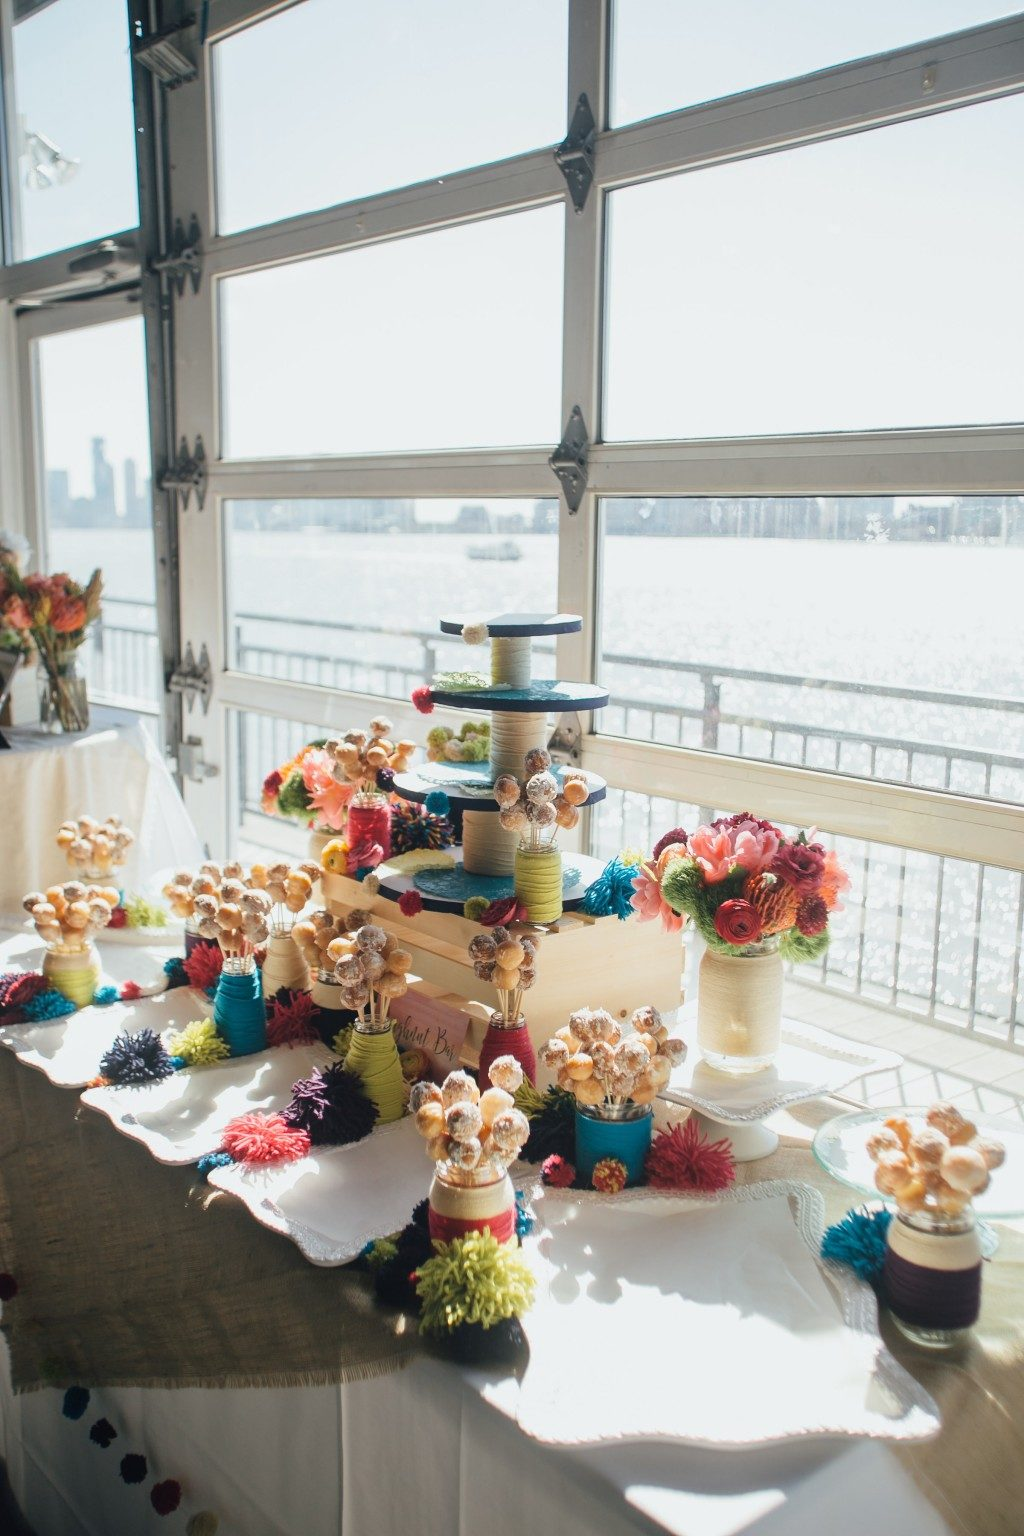 Dessert table at the Big Fake Wedding in NYC